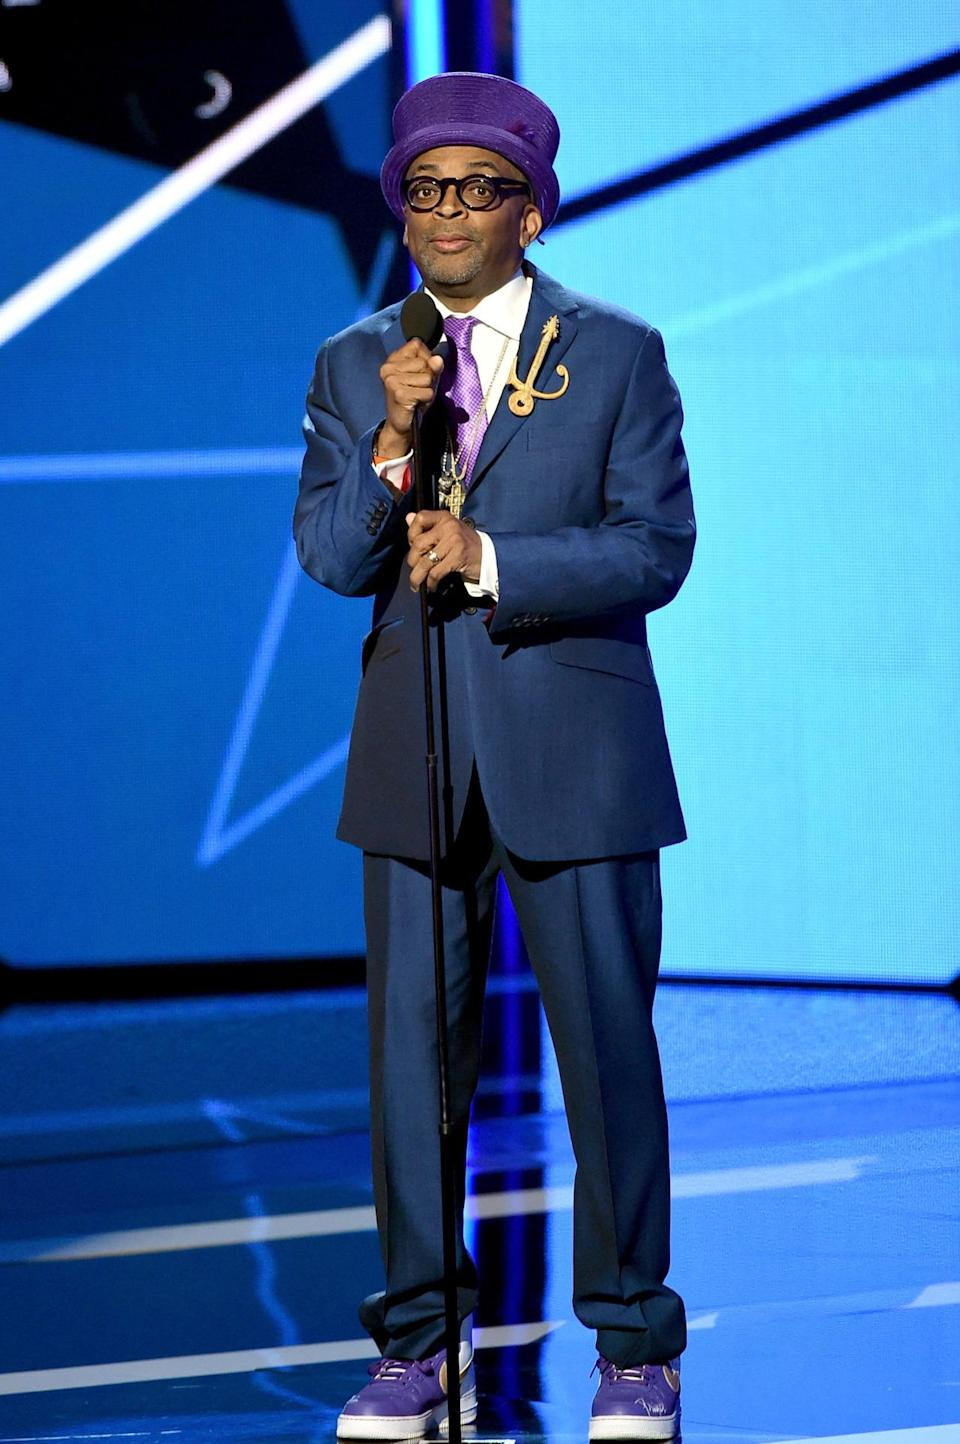 <p>Spike Lee, who gave Samuel L. Jackson his Lifetime Achievement Award, dressed to honor Prince in purple and yellow sneakers, purple tie, Prince symbol pin, and a top hat. Many compared the director's honorific look to Willy Wonka. <i>(Photo: Getty Images)</i></p>